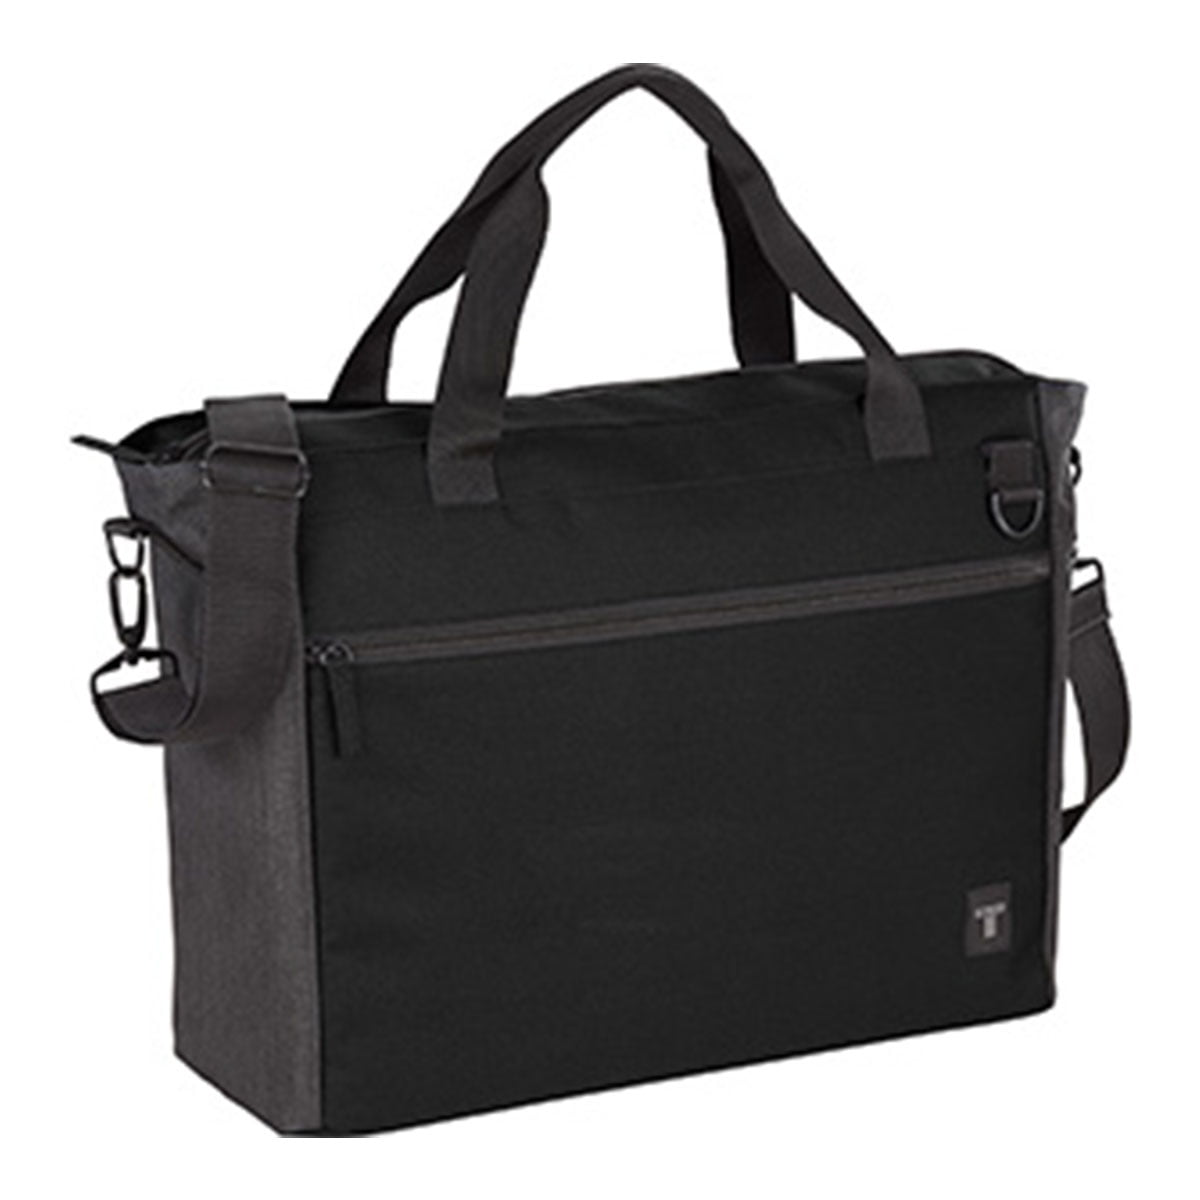 Tranzip Brief 15 inch Computer Tote-Black